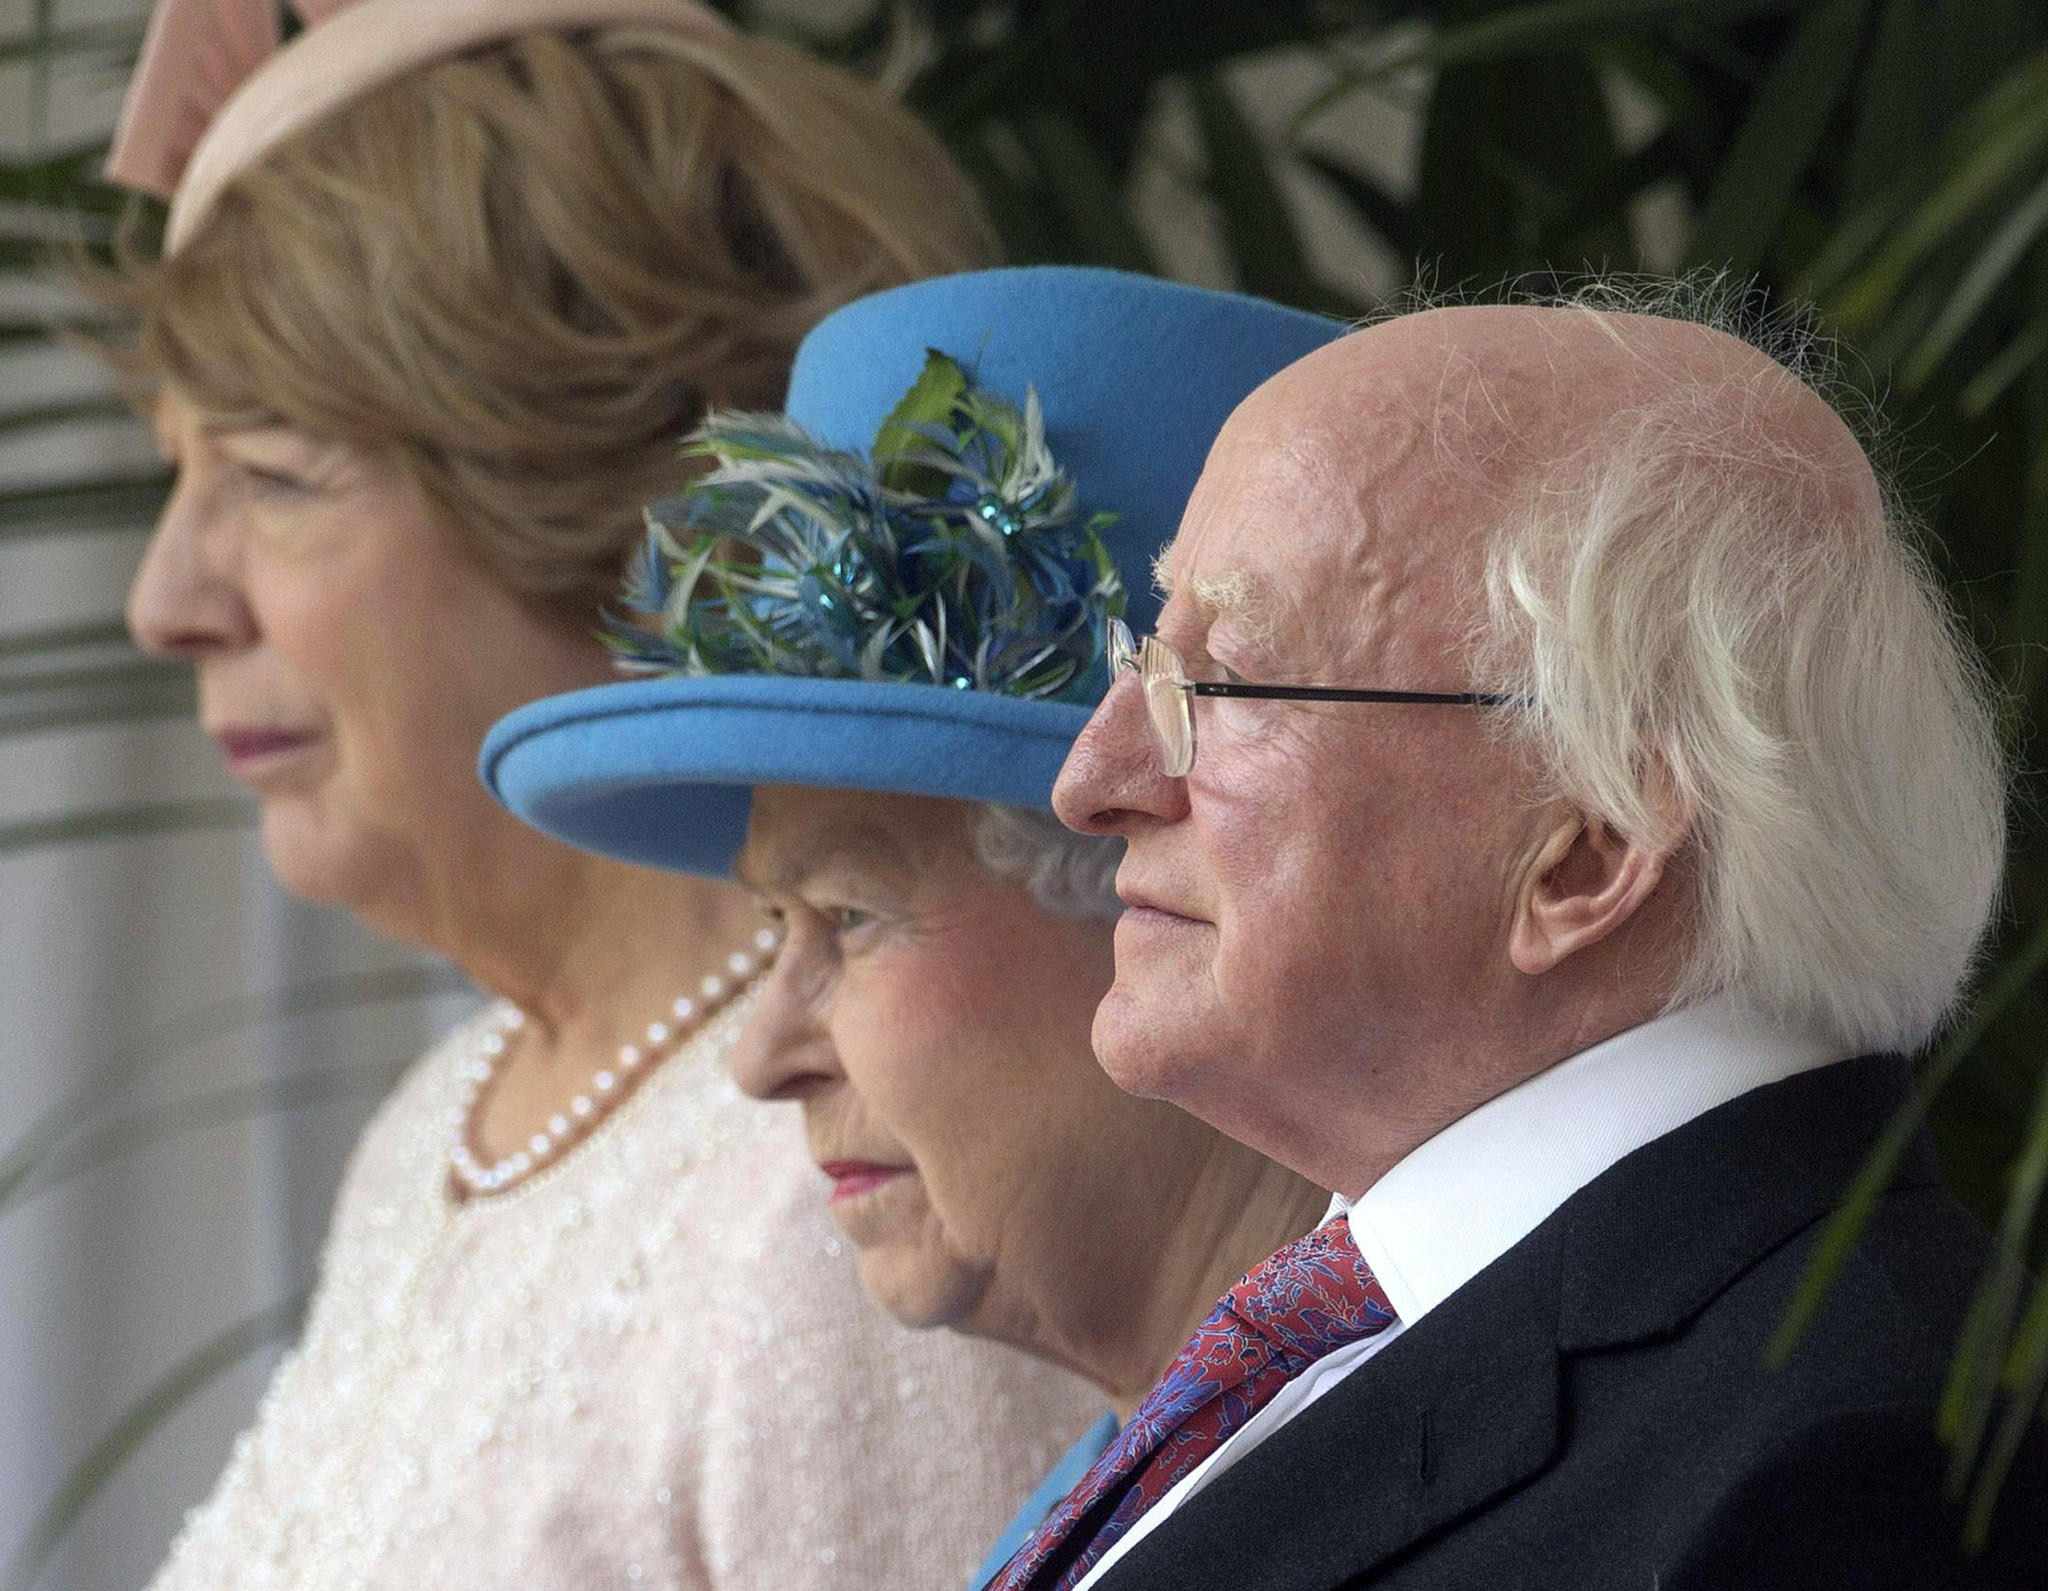 Britain's Queen Elizabeth II is flanked by Irish President Michael D. Higgins and his wife, Sabina, during an official welcoming ceremony for Higgins at Windsor Castle.